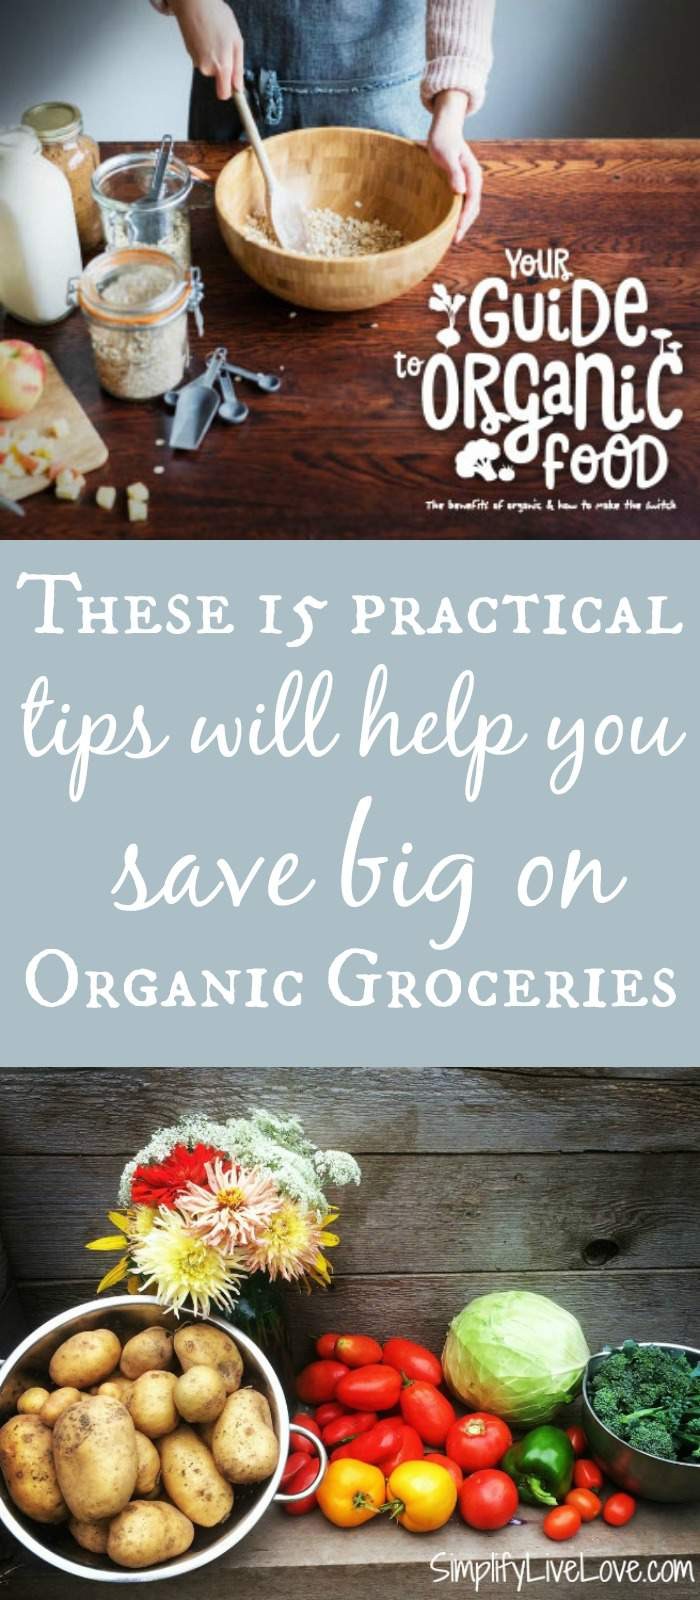 15 practical tips to help you save big on organic groceries. #alwaysorganic #ad